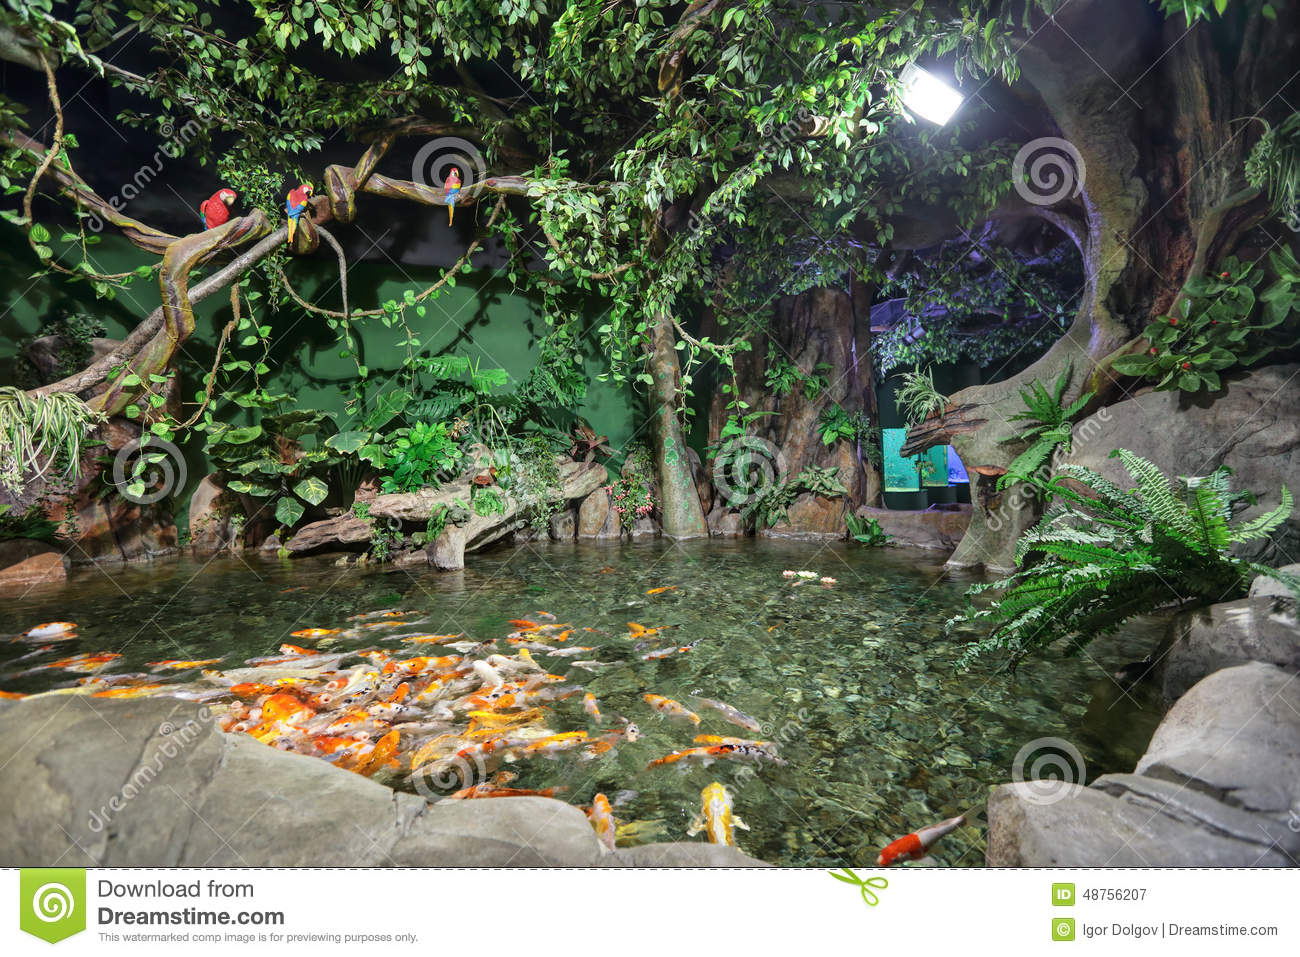 Adler Russia  City new picture : ... adler russia mar one main attractions adler largest russia koi